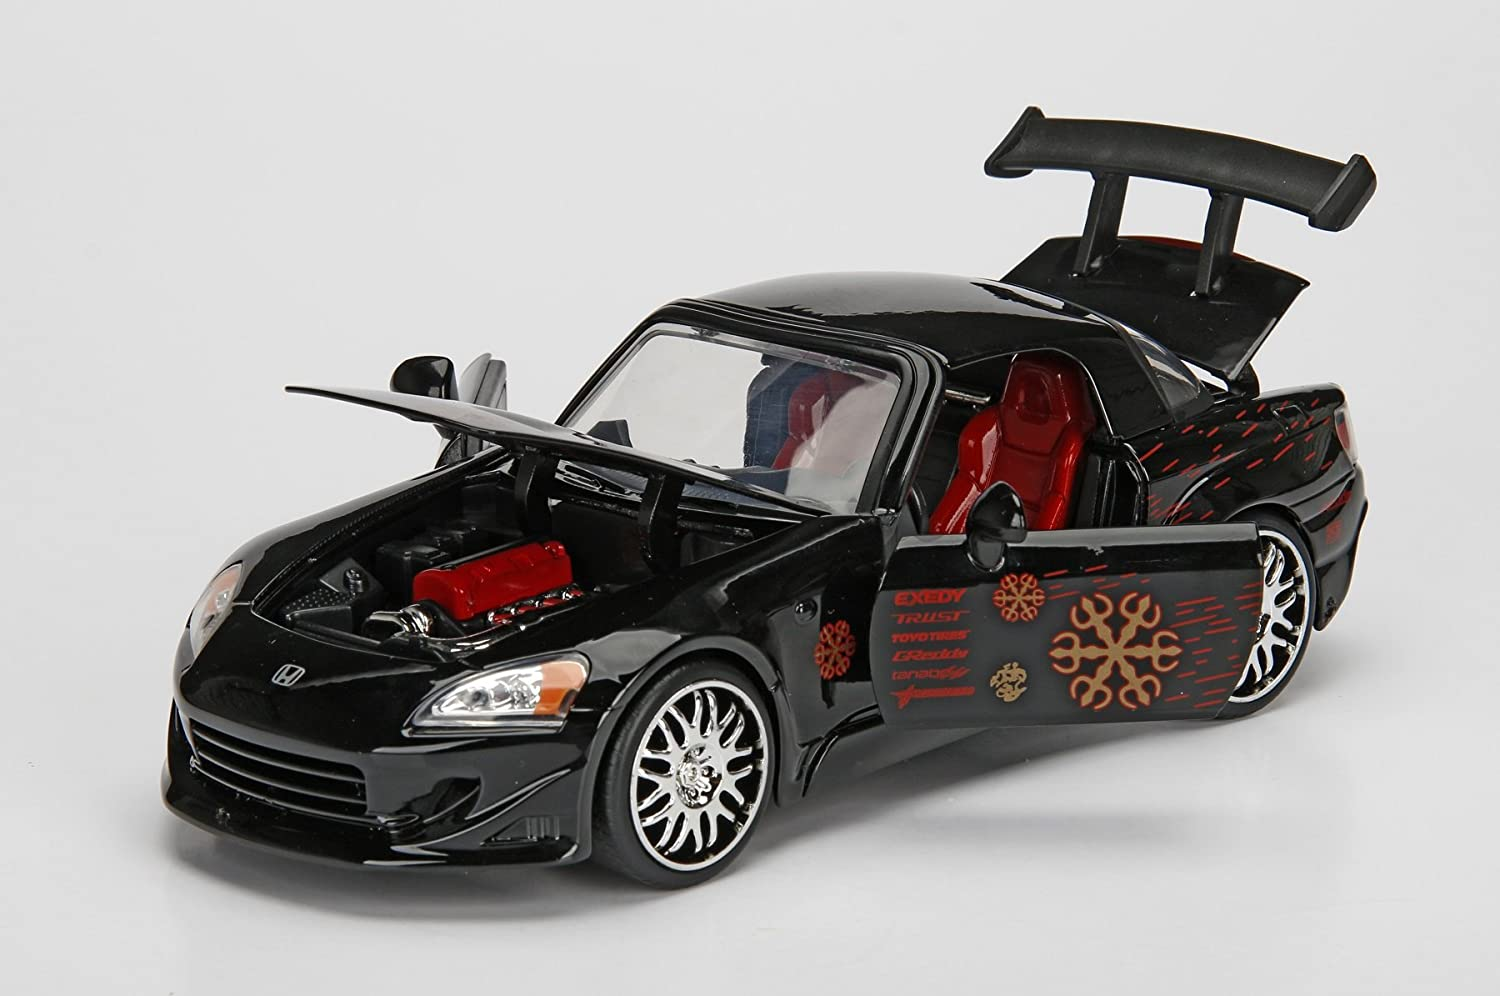 Jada Toys The Fast The Furious Movie 1 Johnny Tran's 2000 Honda S2000 diecast Collectible Toy Vehicle car 1 24 Scale Black with Decal